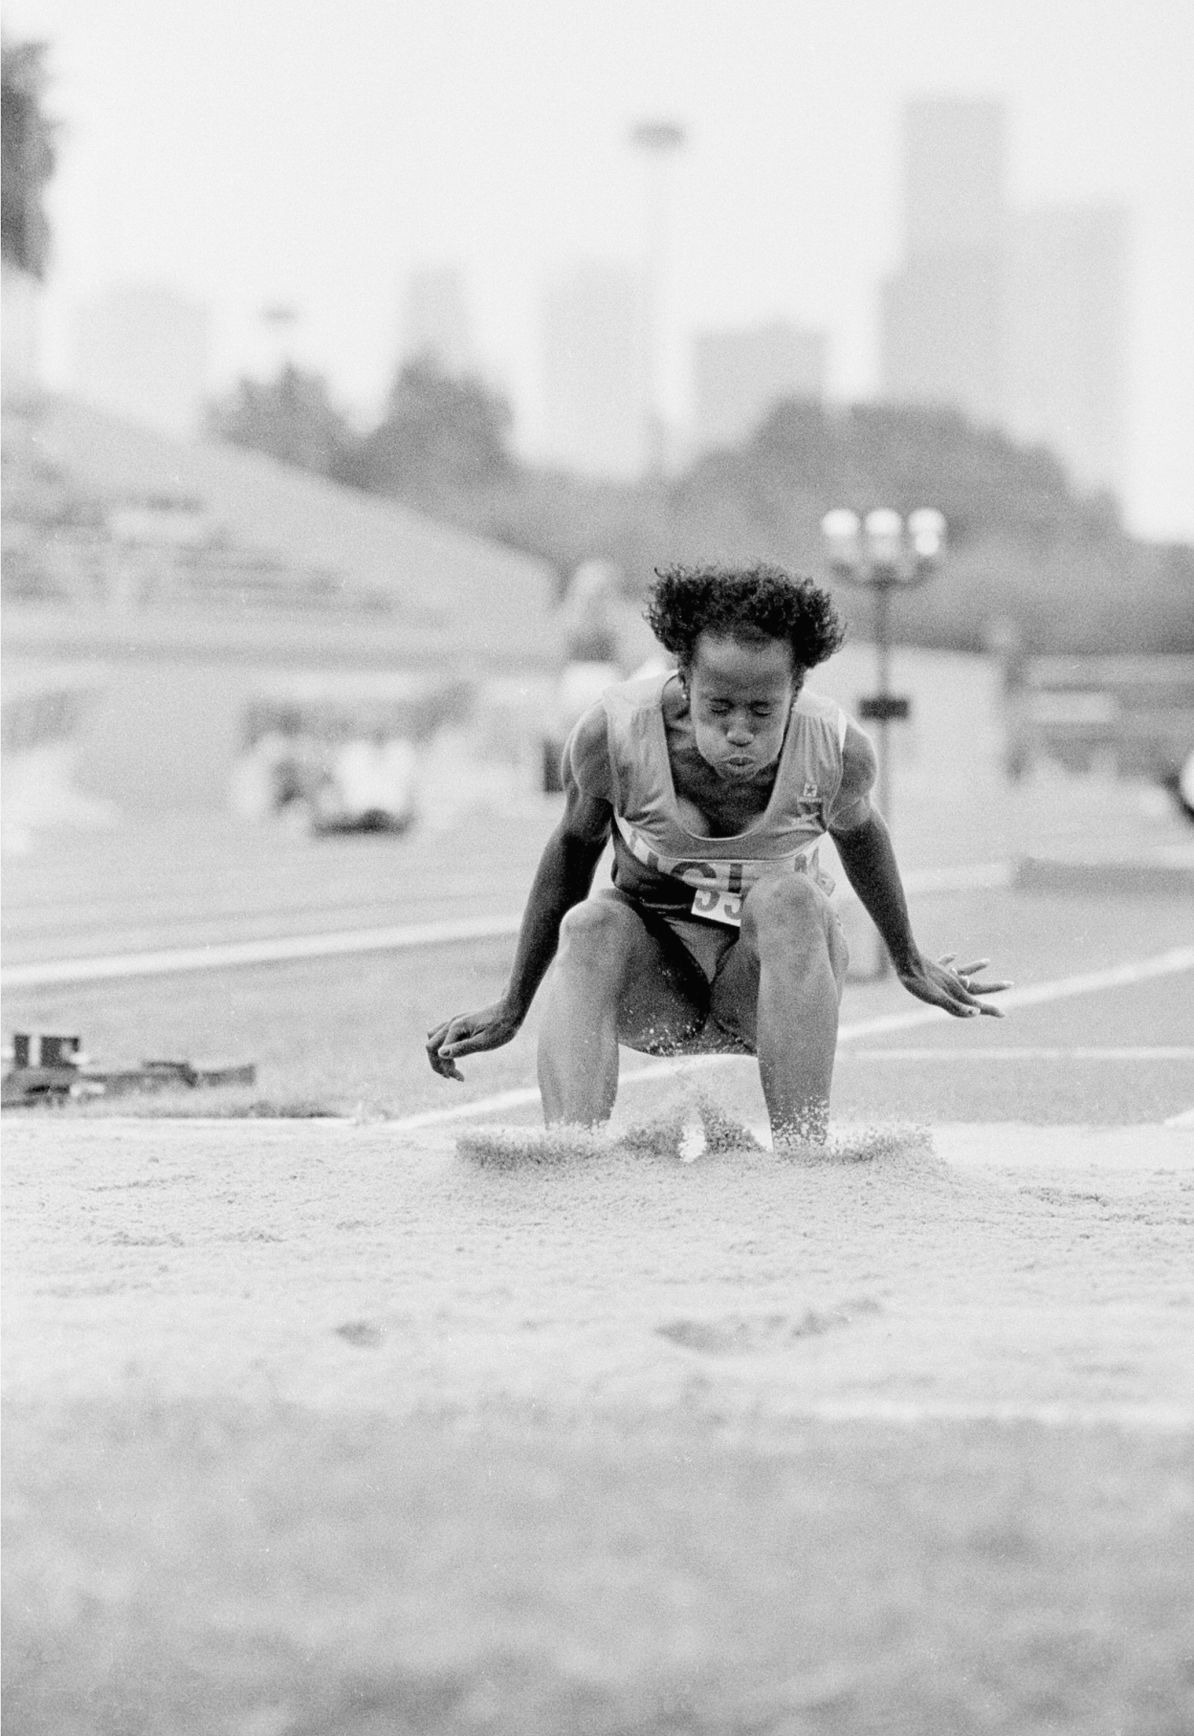 Discussion on this topic: Jamie Campbell Bower (born 1988), jackie-joyner-kersee-6-olympic-medals/